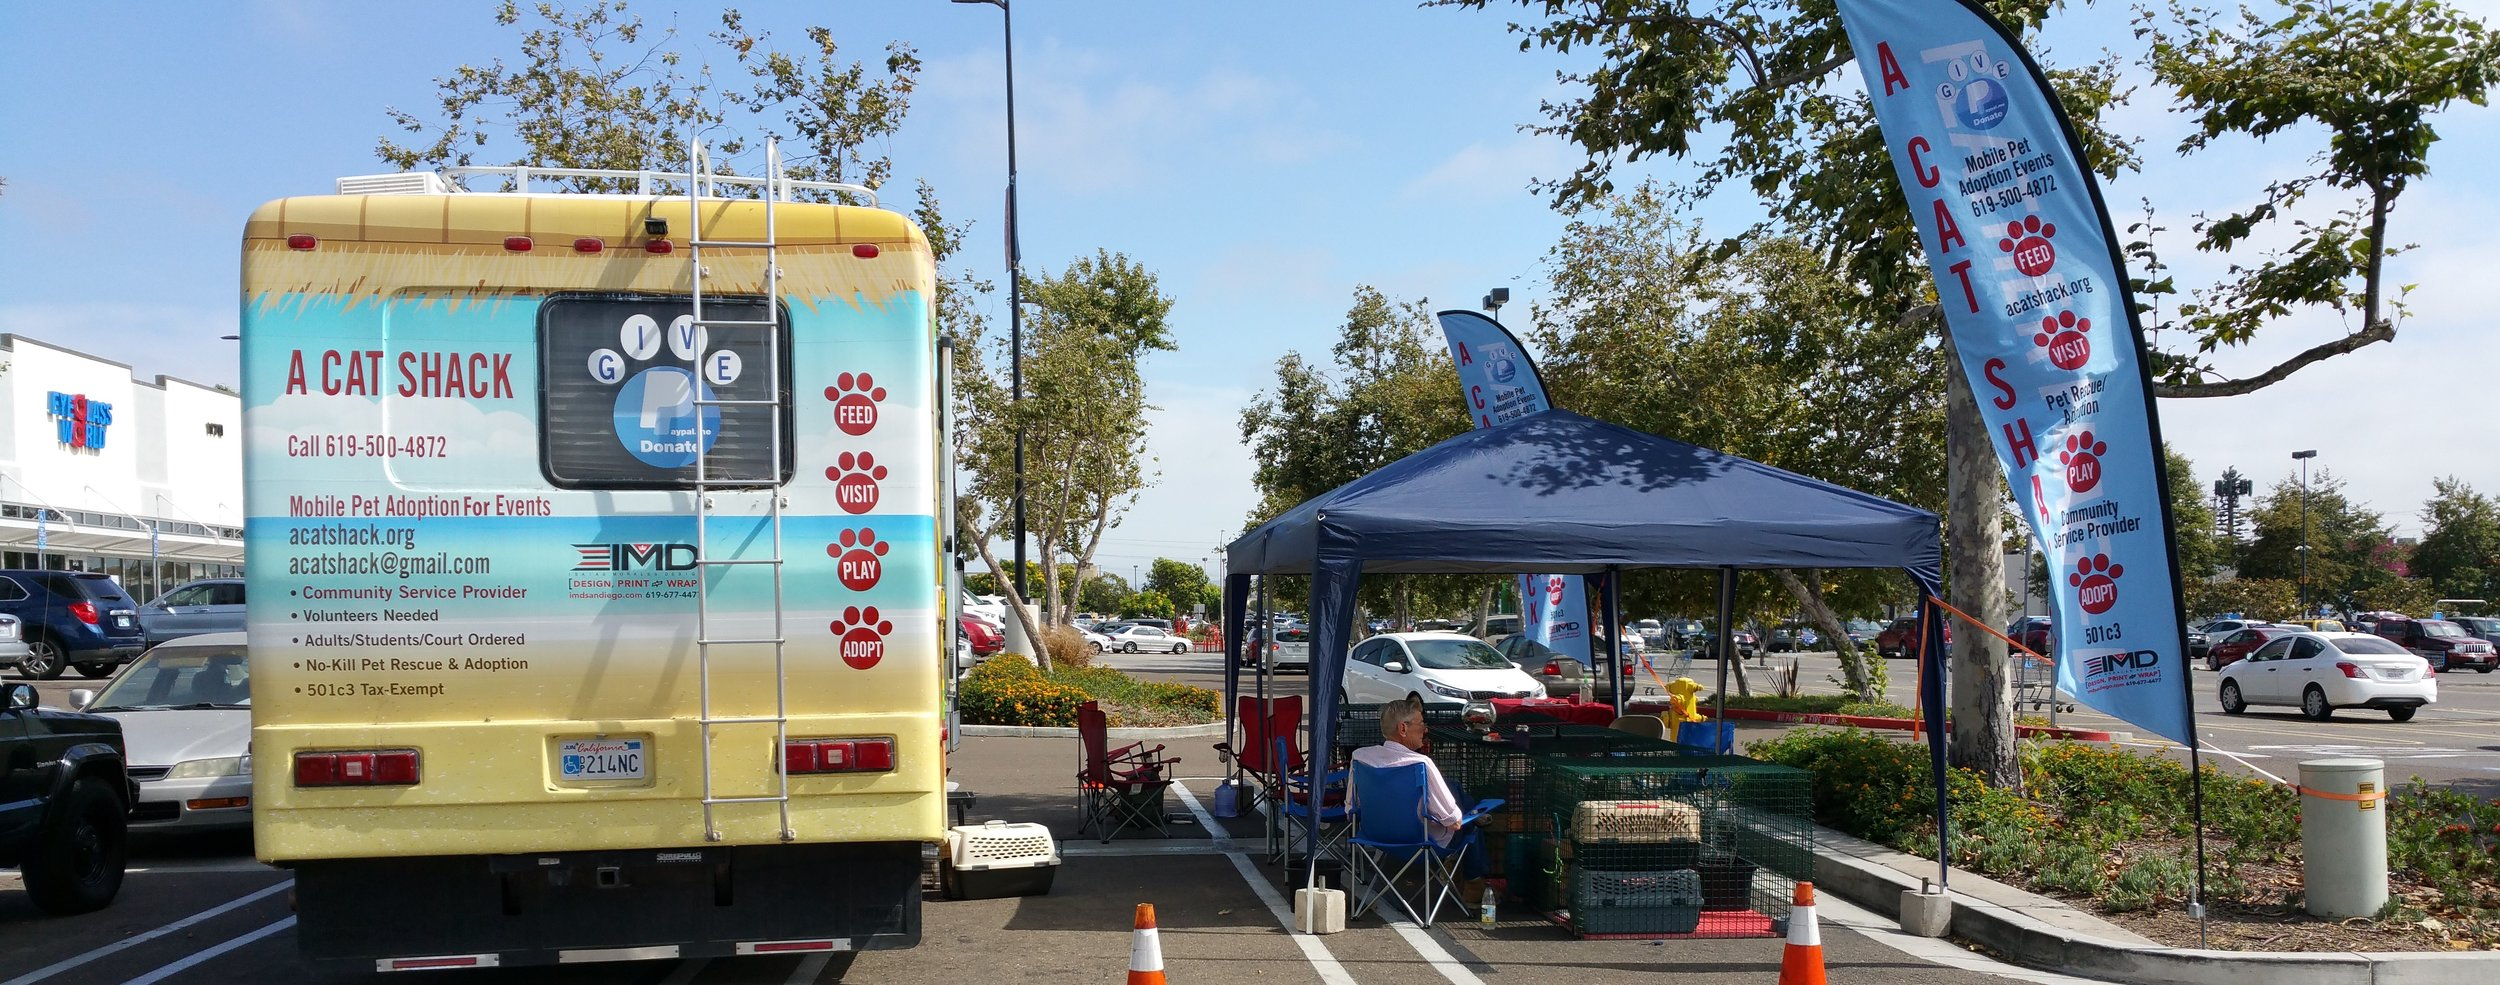 rv and flags for petco smaller.jpg